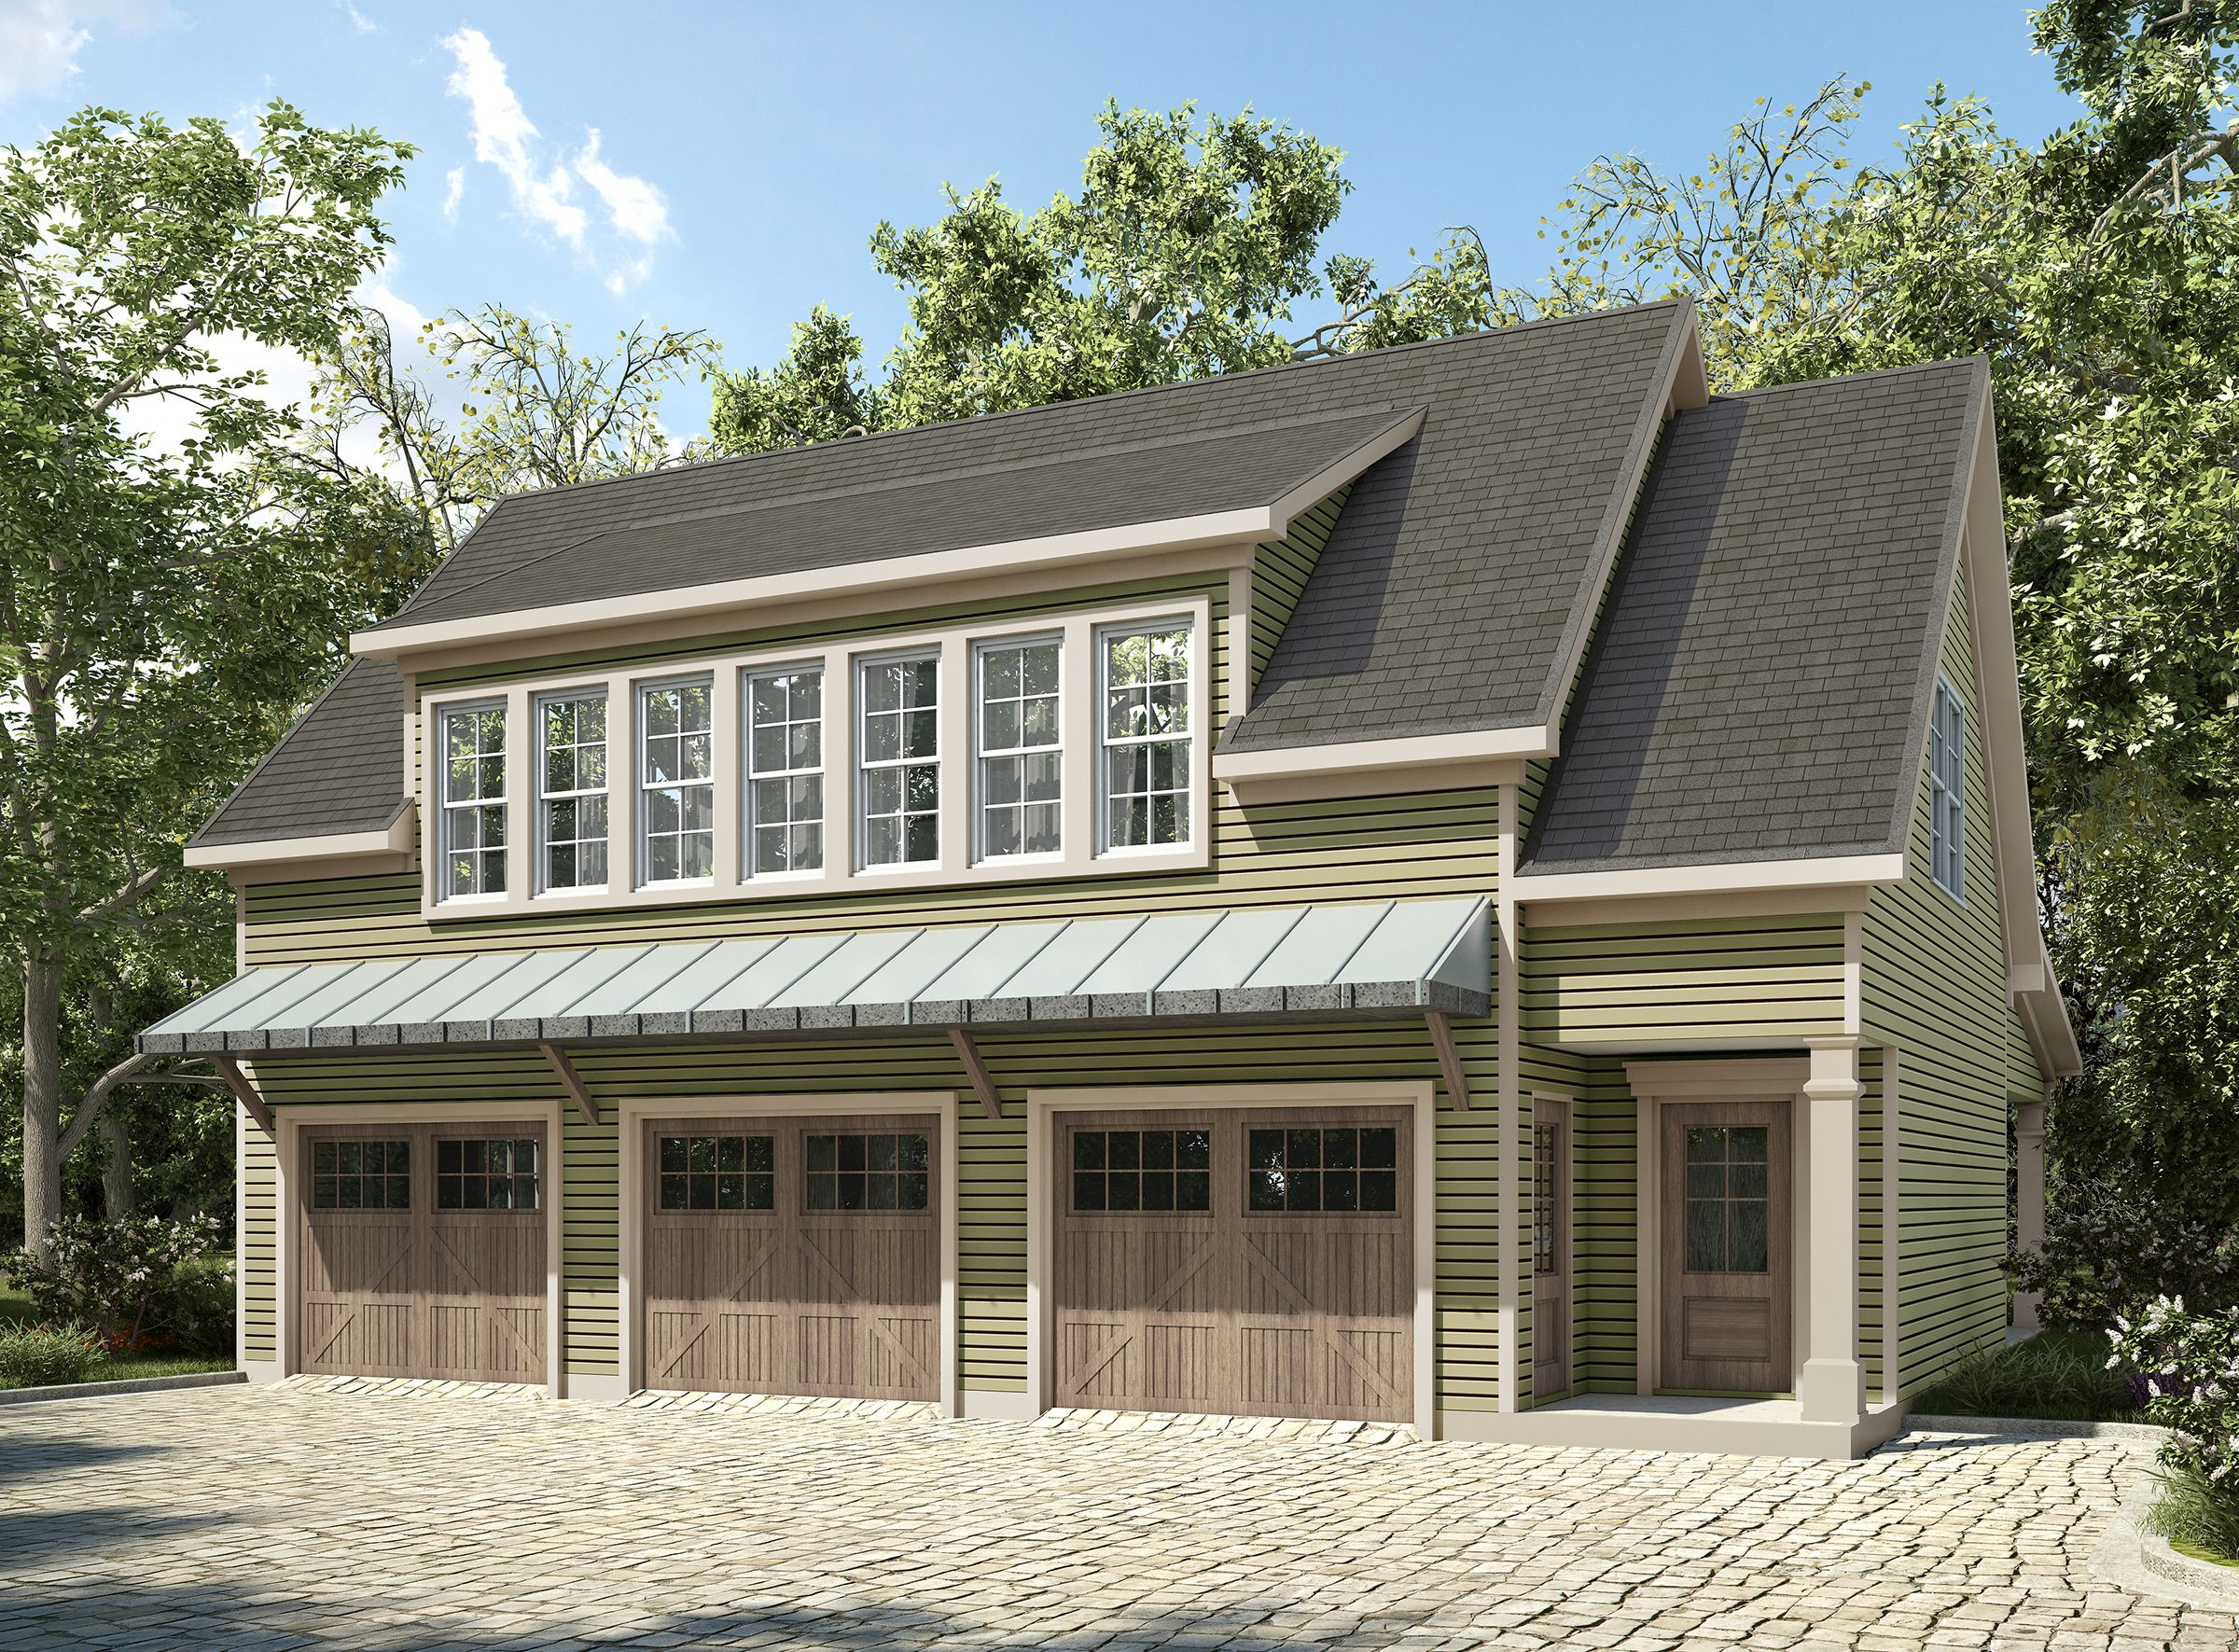 3 Bay Carriage House Plan with Shed